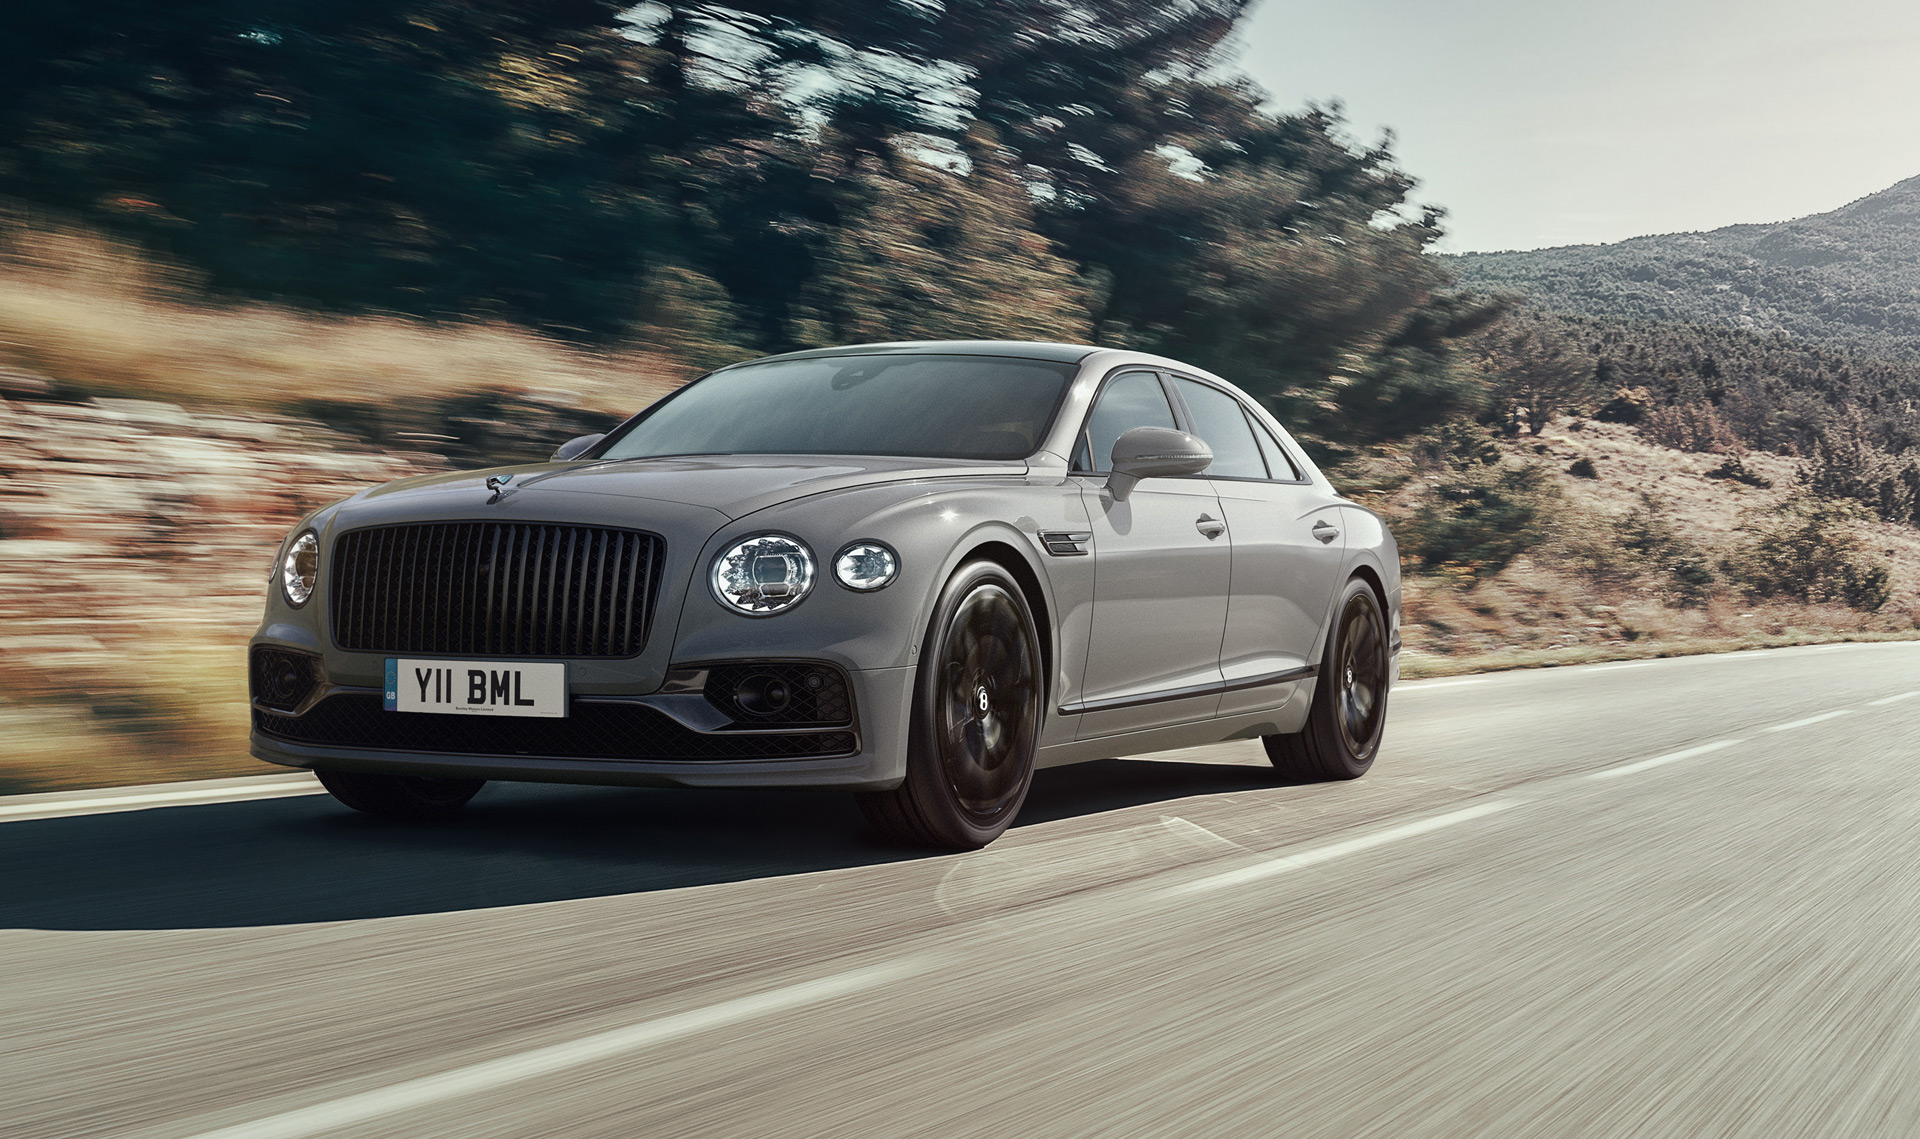 Preview: 2022 Bentley Flying Spur brings more refinement